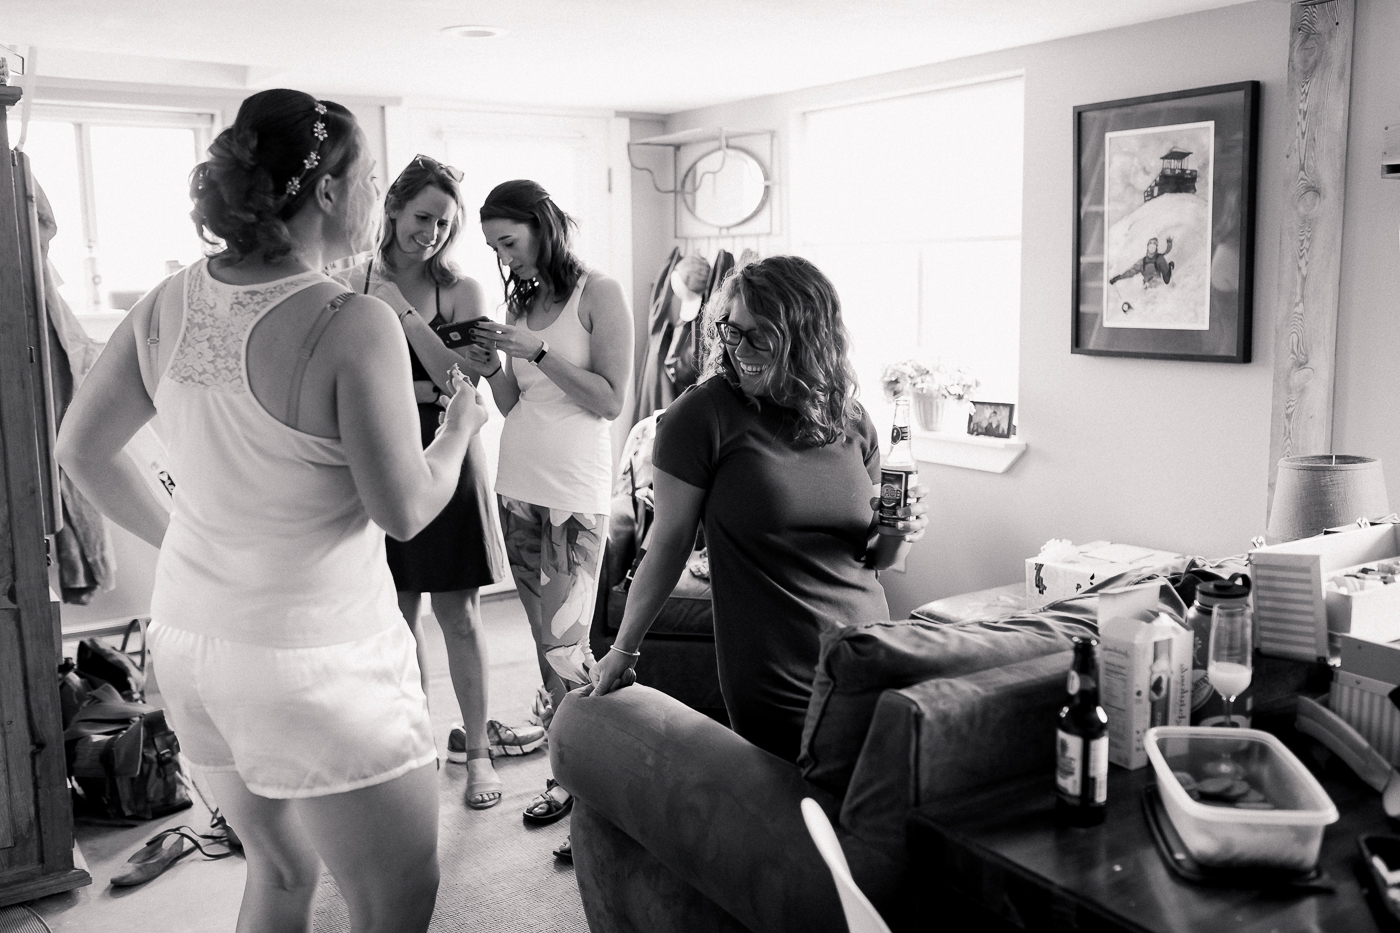 Bridal party getting ready photo ideas